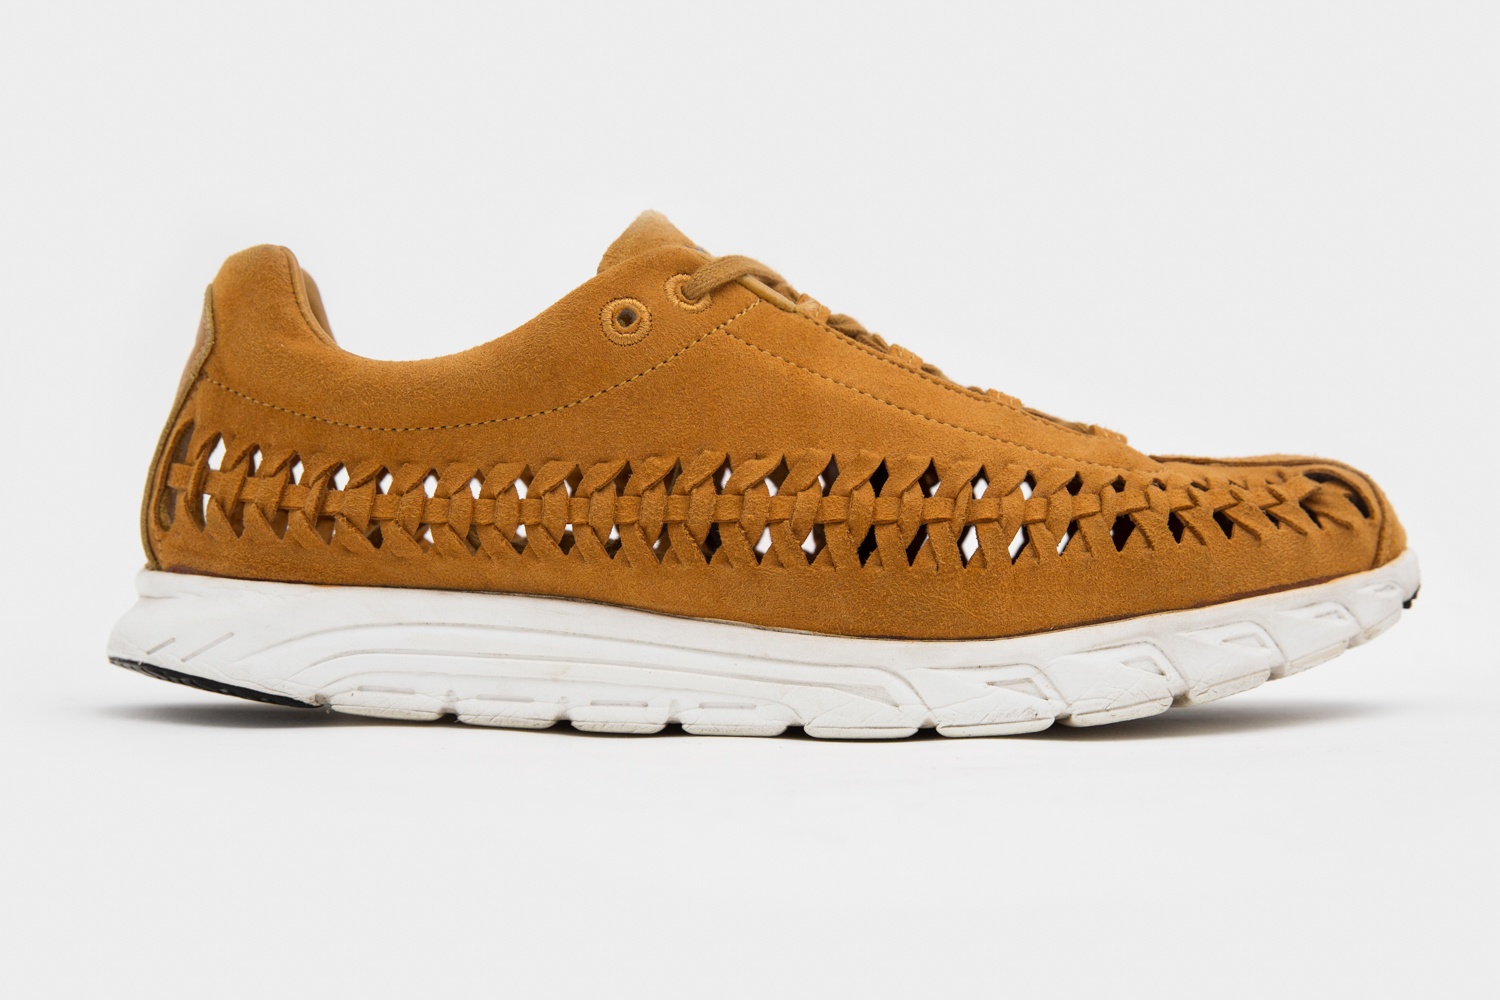 b6c6201b12e2 Shop our selection of Nike Mayfly online now.